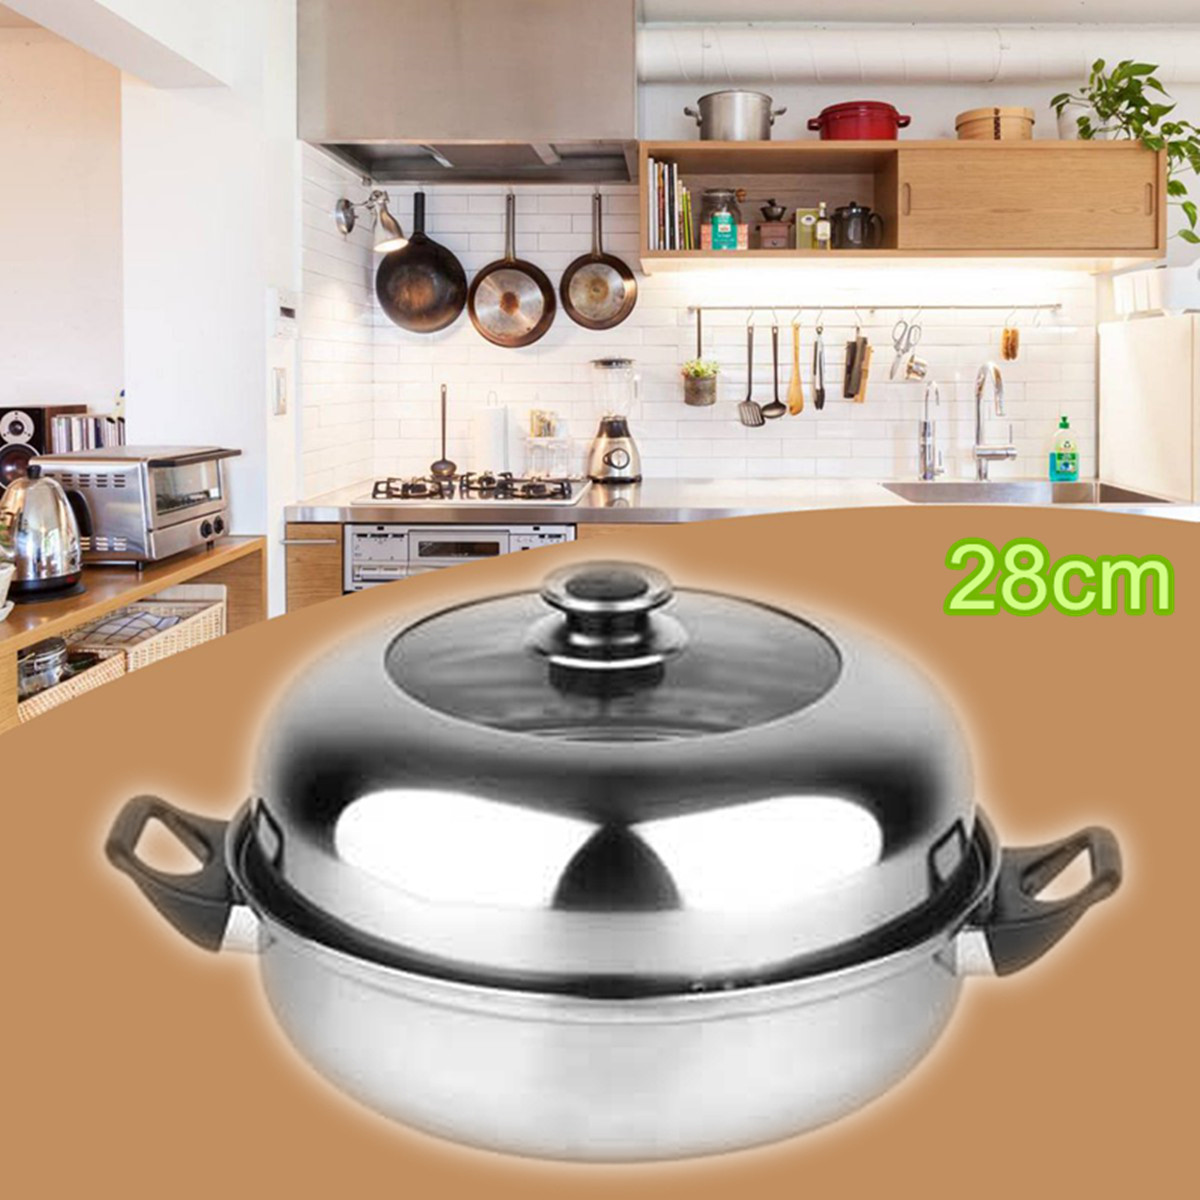 2 Tier Stainless Steel Steamer Induction Compatible Cookware 28cm Steam Pot